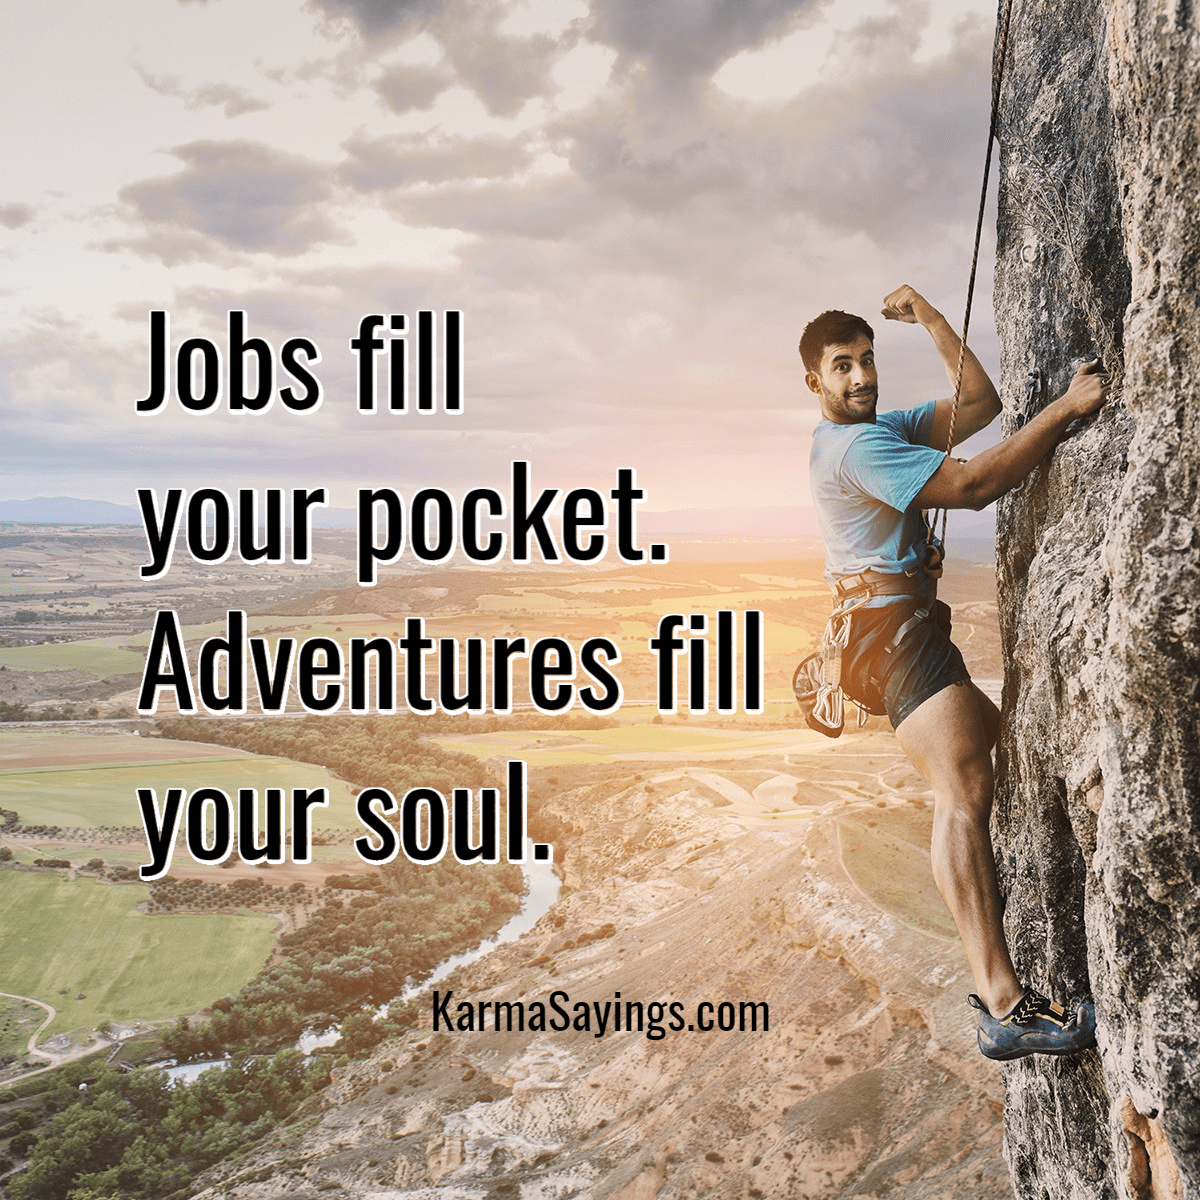 a28fe2328c92 DailyKarmaQuotes › Jobs fill your pocket. Adventures fill your soul.